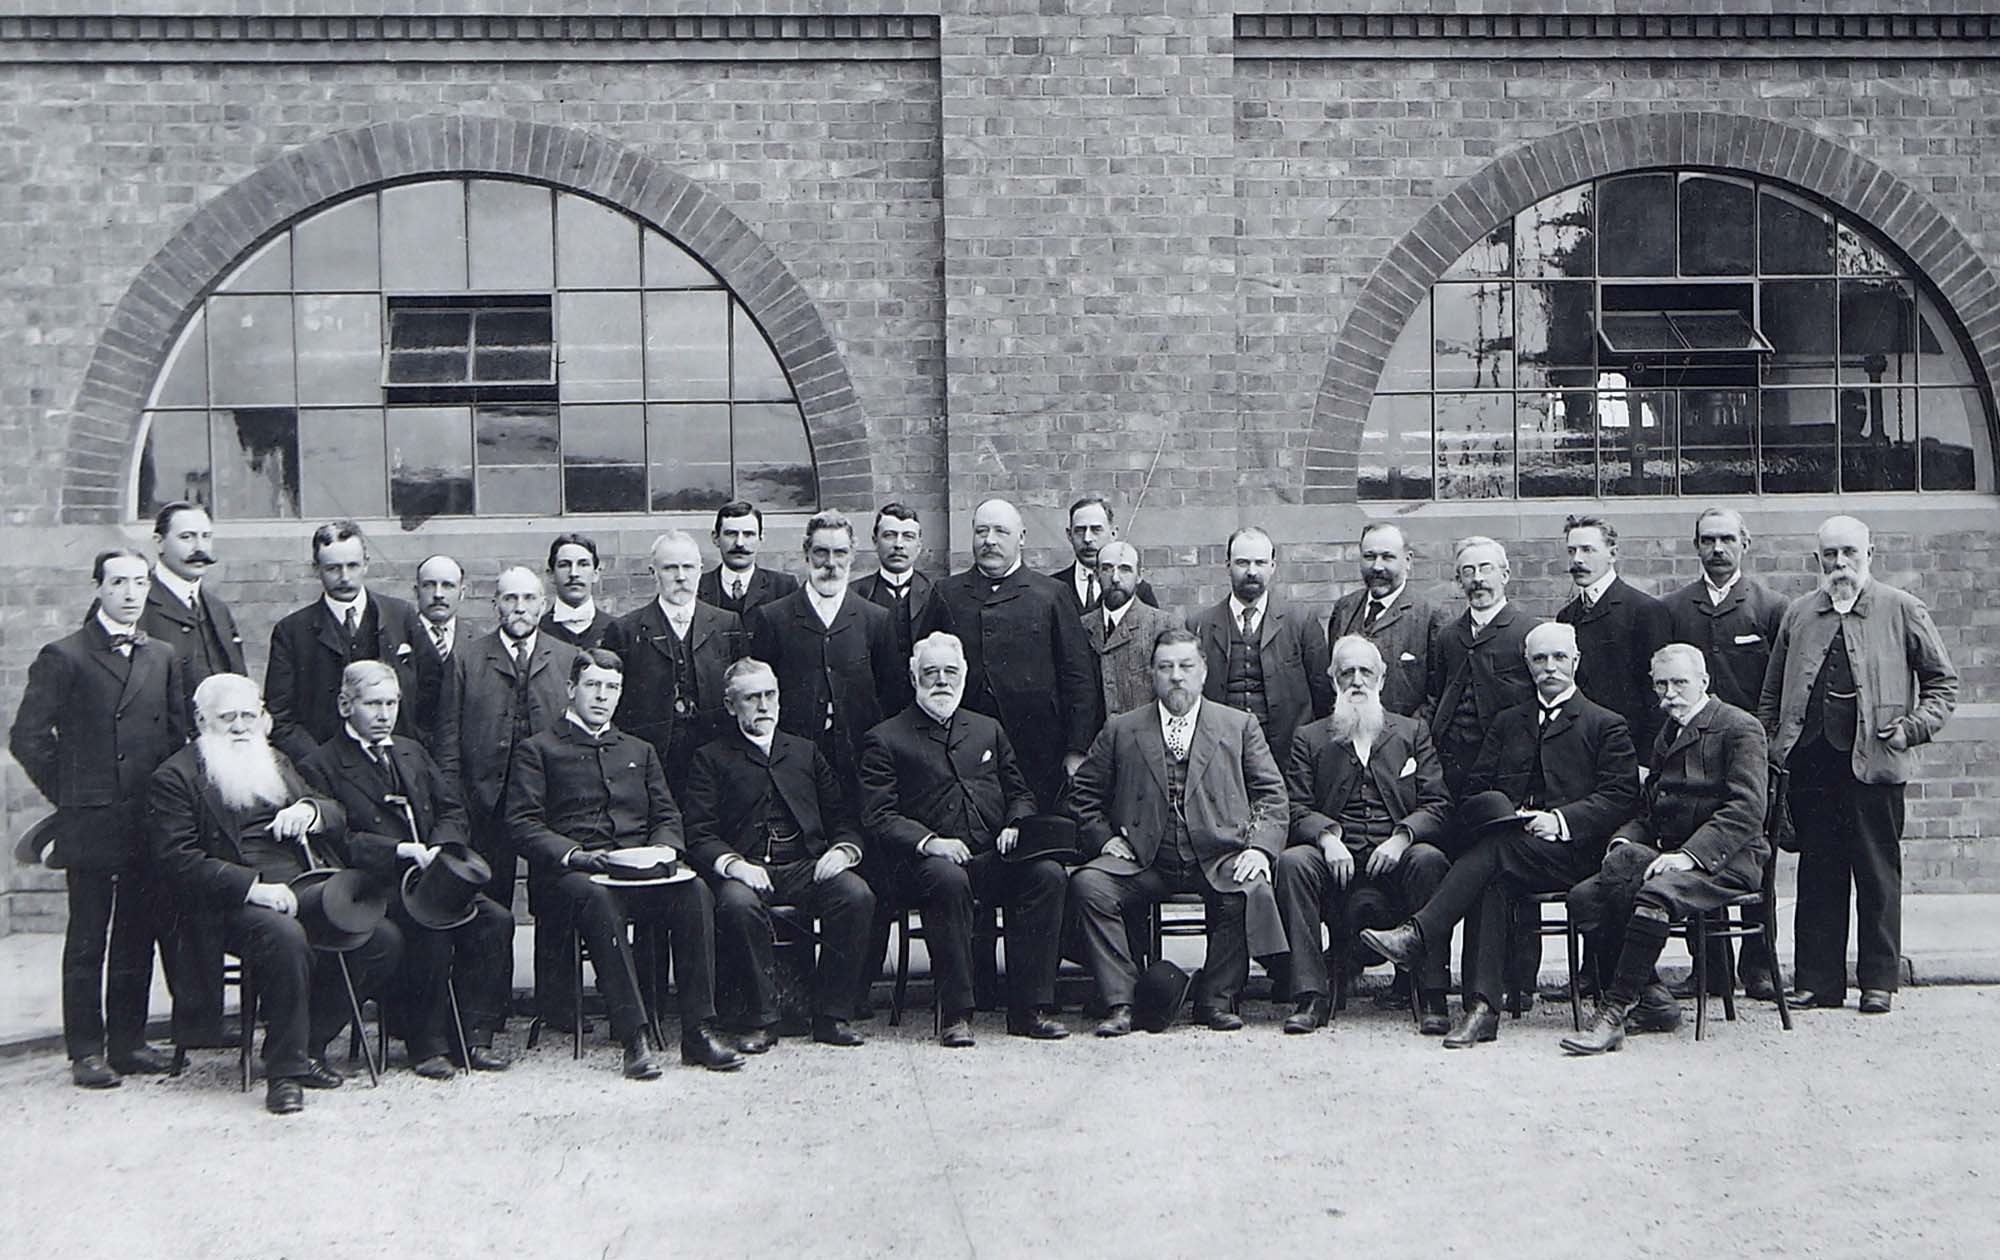 Representatives and people involved in the creation of the pumping station pose for a group photograph, 1891	Leicestershire Record Office -